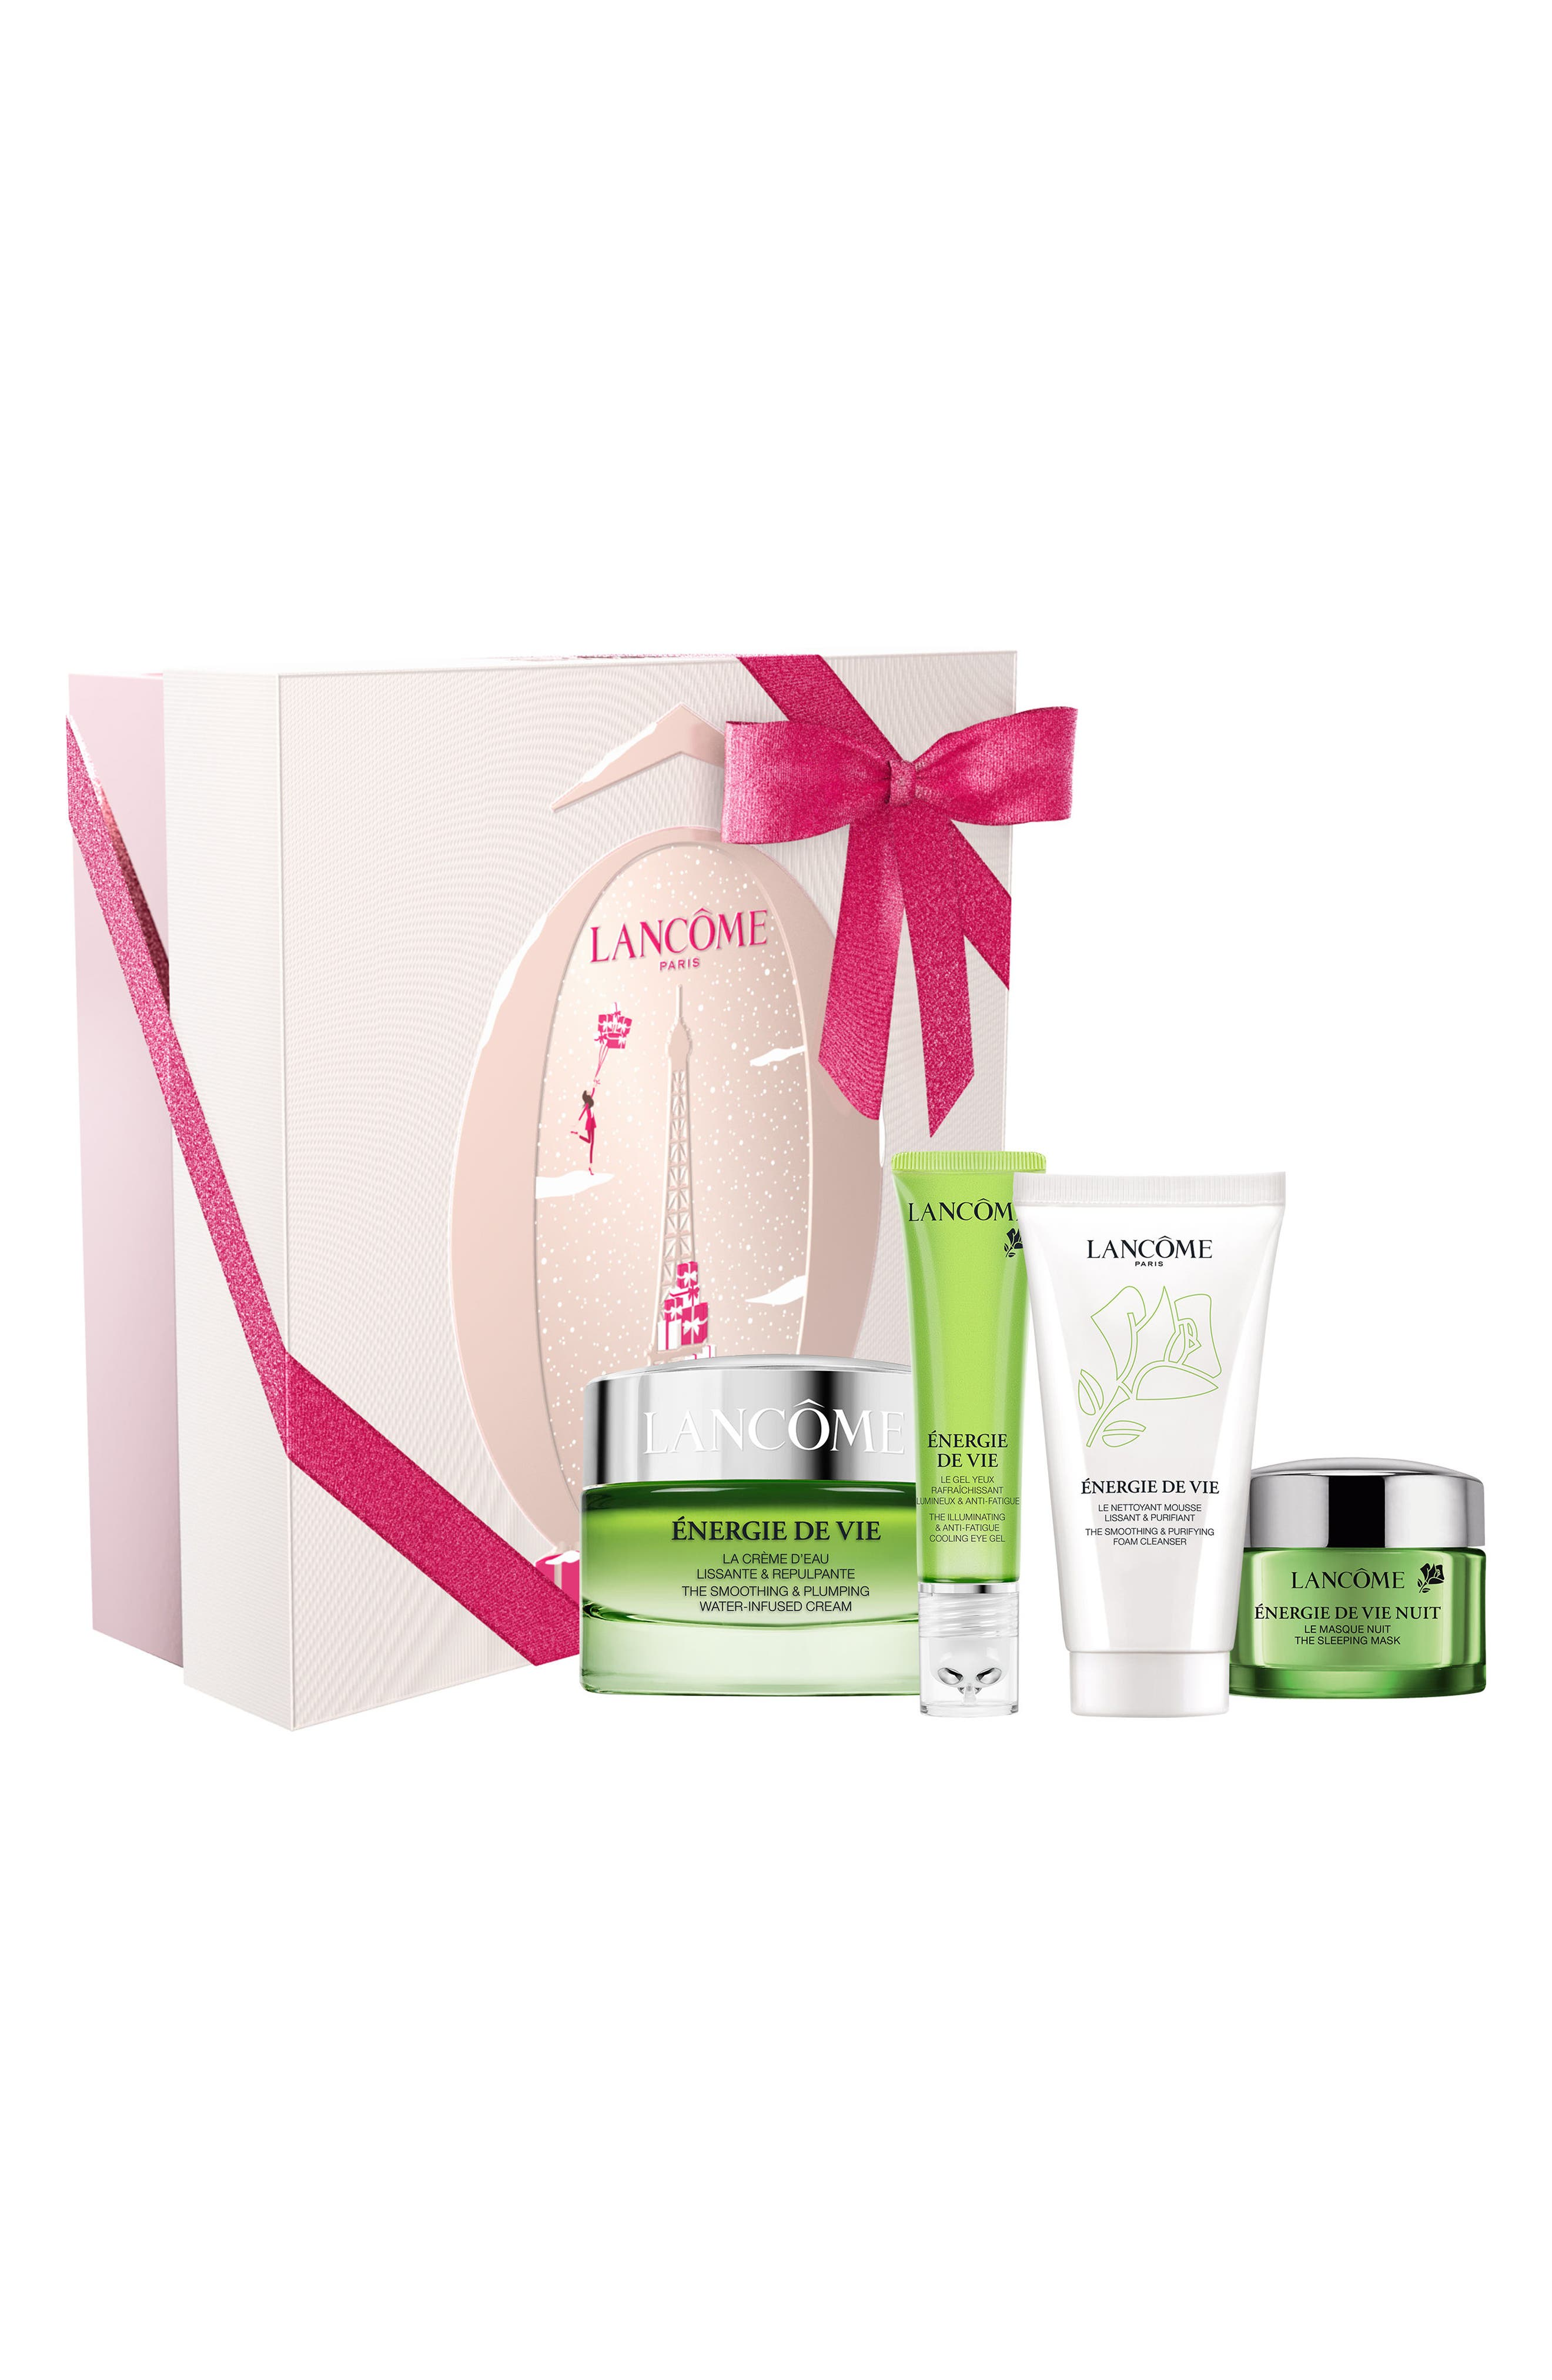 Lancôme Énergie de Vie Collection ($121 Value)